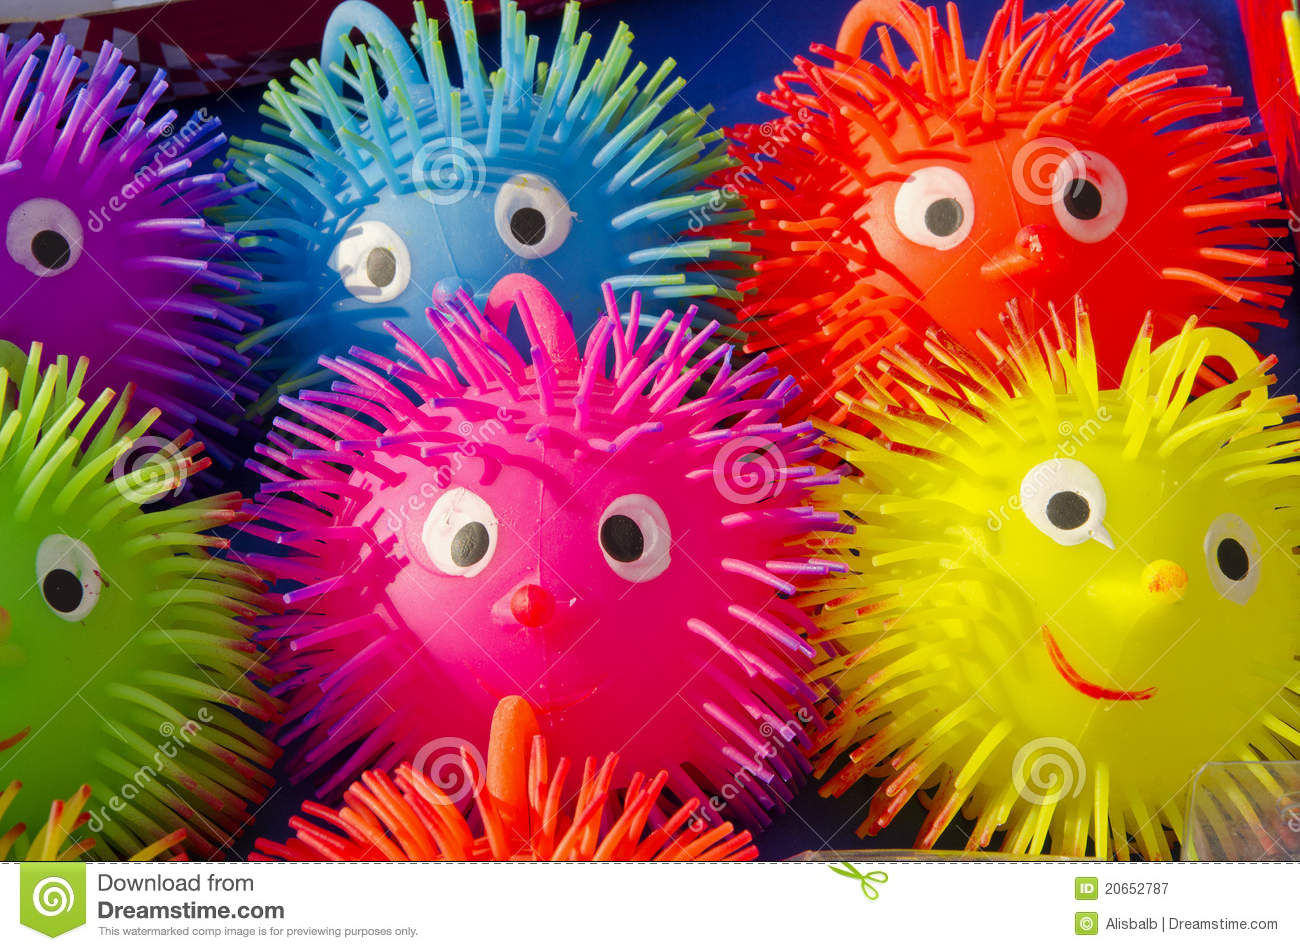 Rubber toys in the fair stock image. Image of green, blue - 20652787